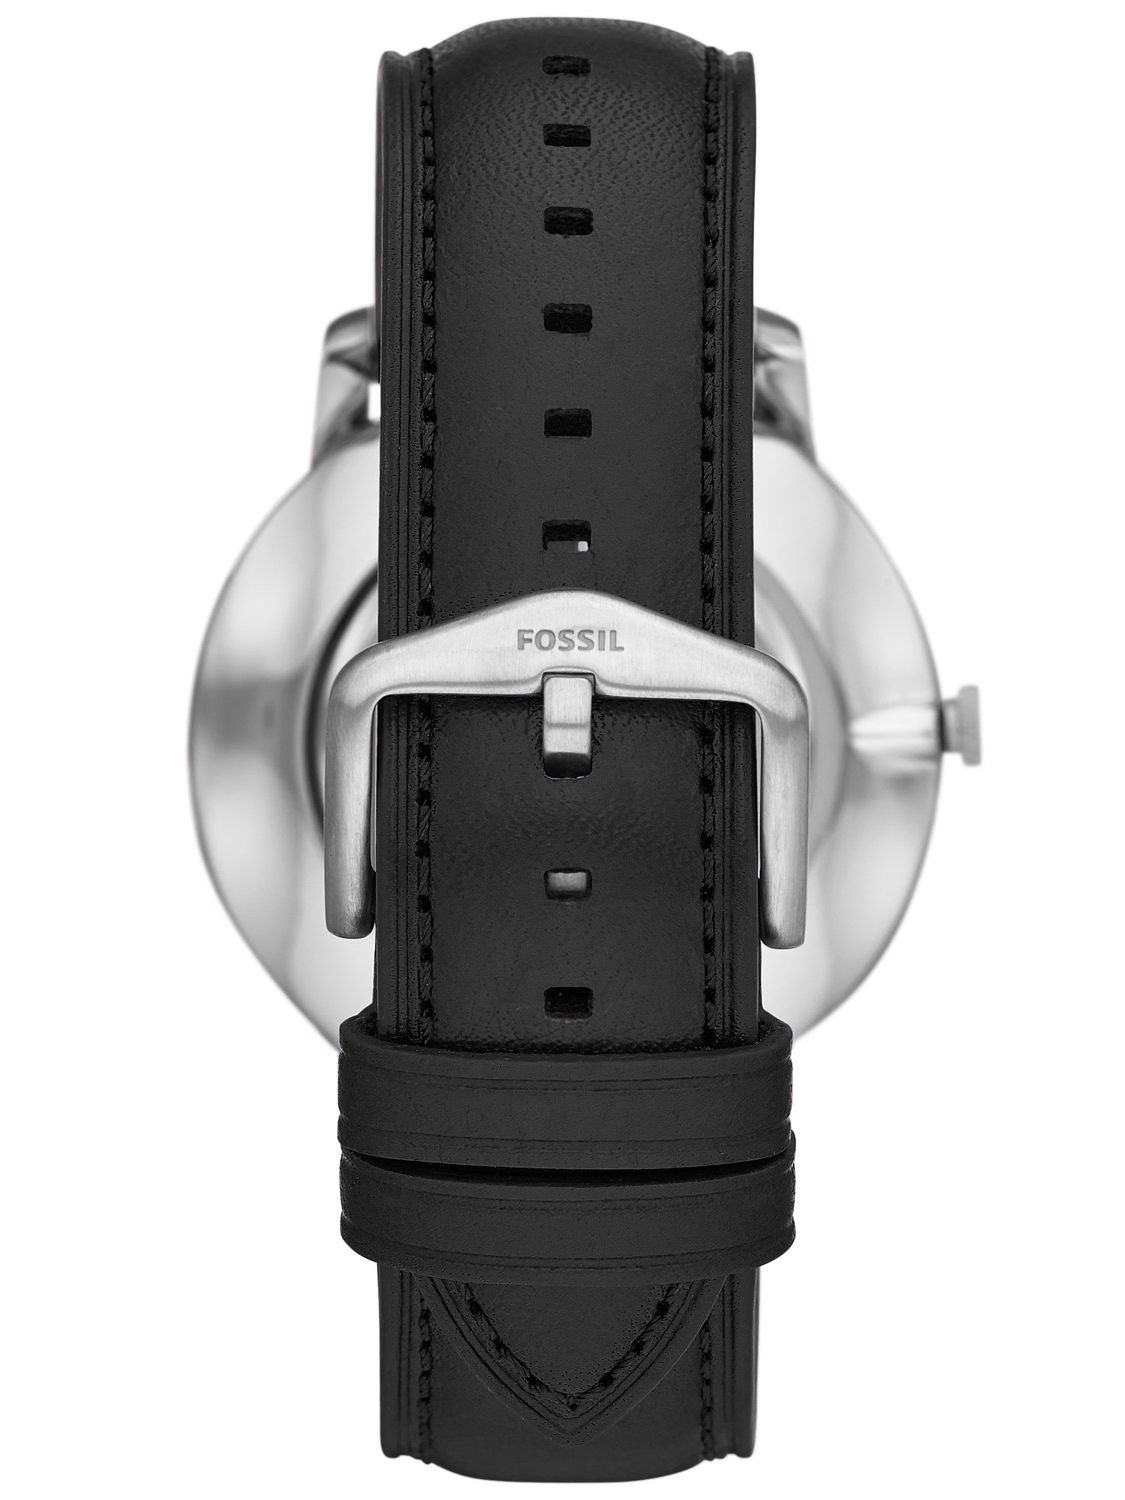 198a828ed ... Fossil FS5398 Mens Watch The Minimalist Image 3